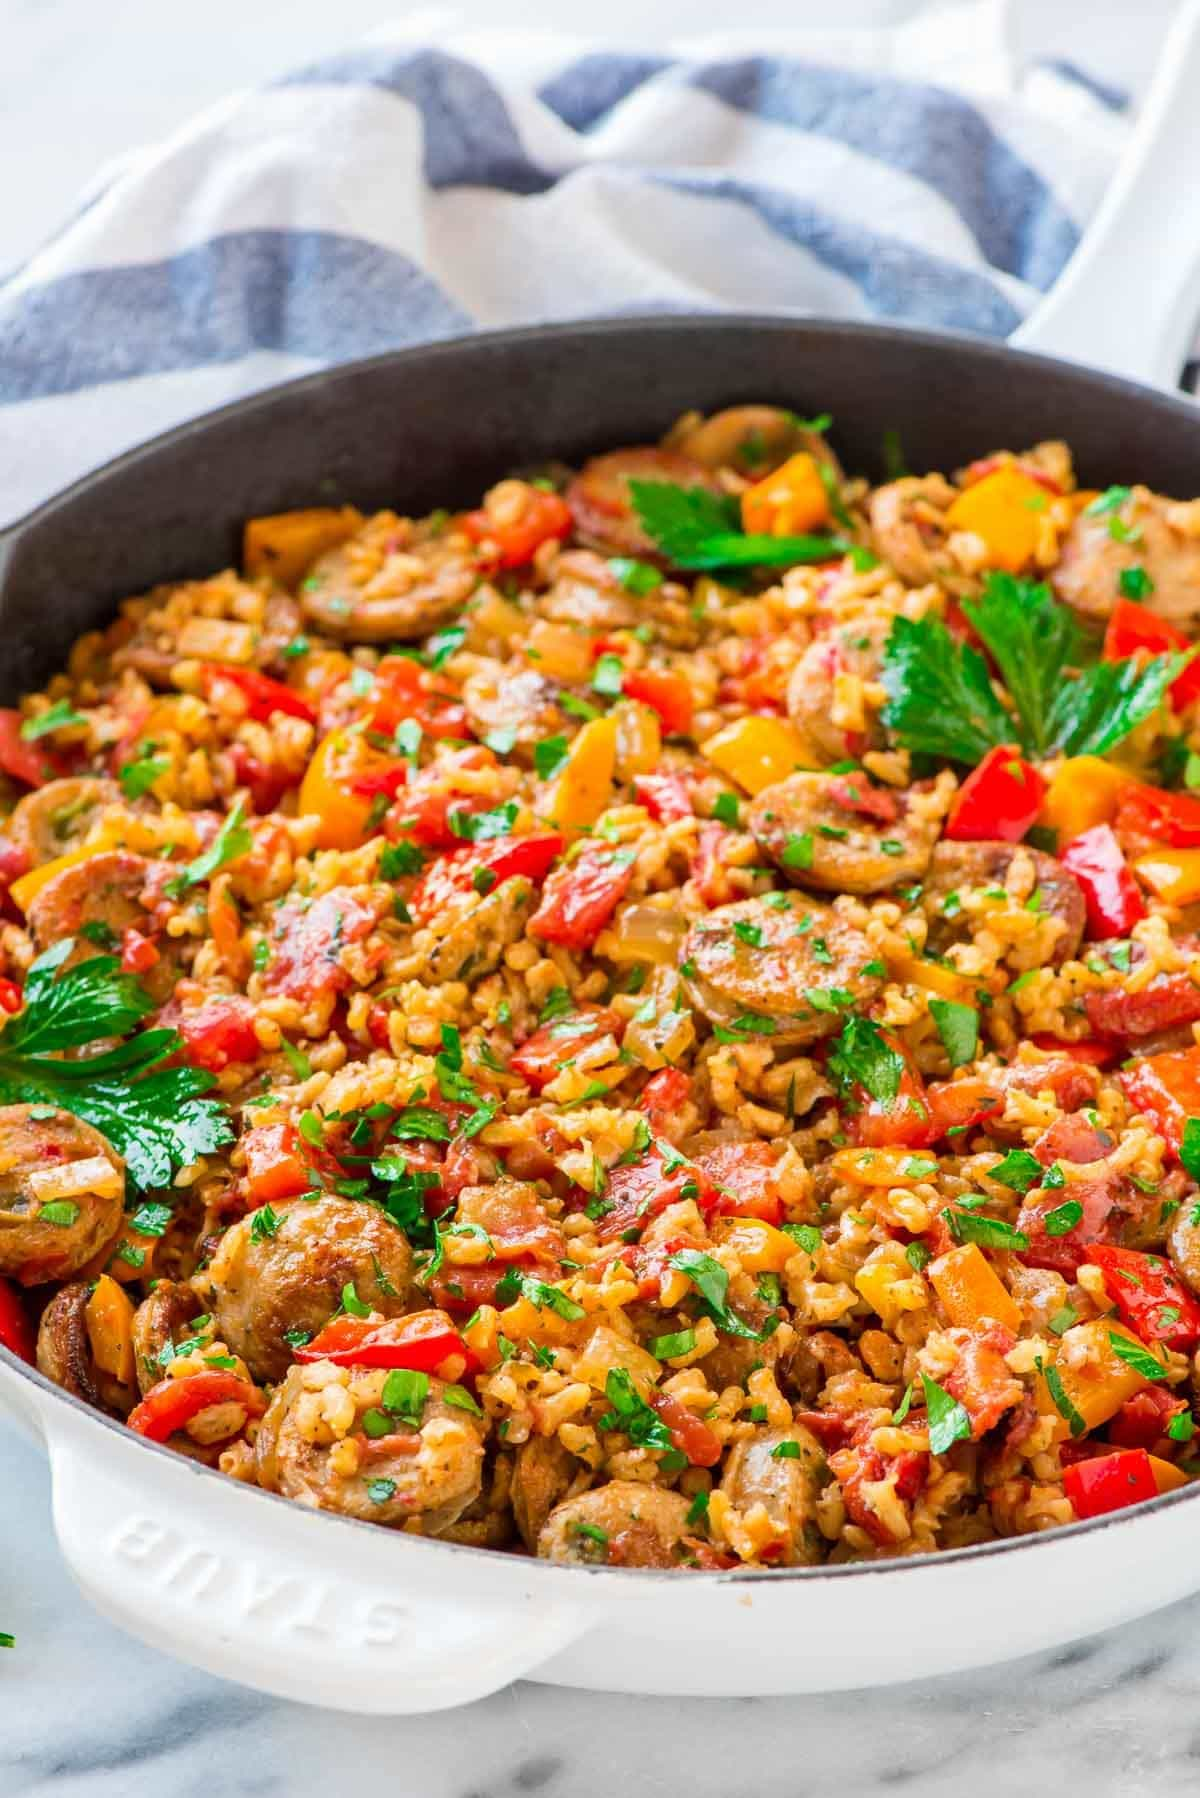 Italian Sausage and Rice Casserole with Peppers. Everyhting cooks in ONE PAN, even the rice! Quick, easy, and healthy. Recipe at wellplated.com | @wellplated